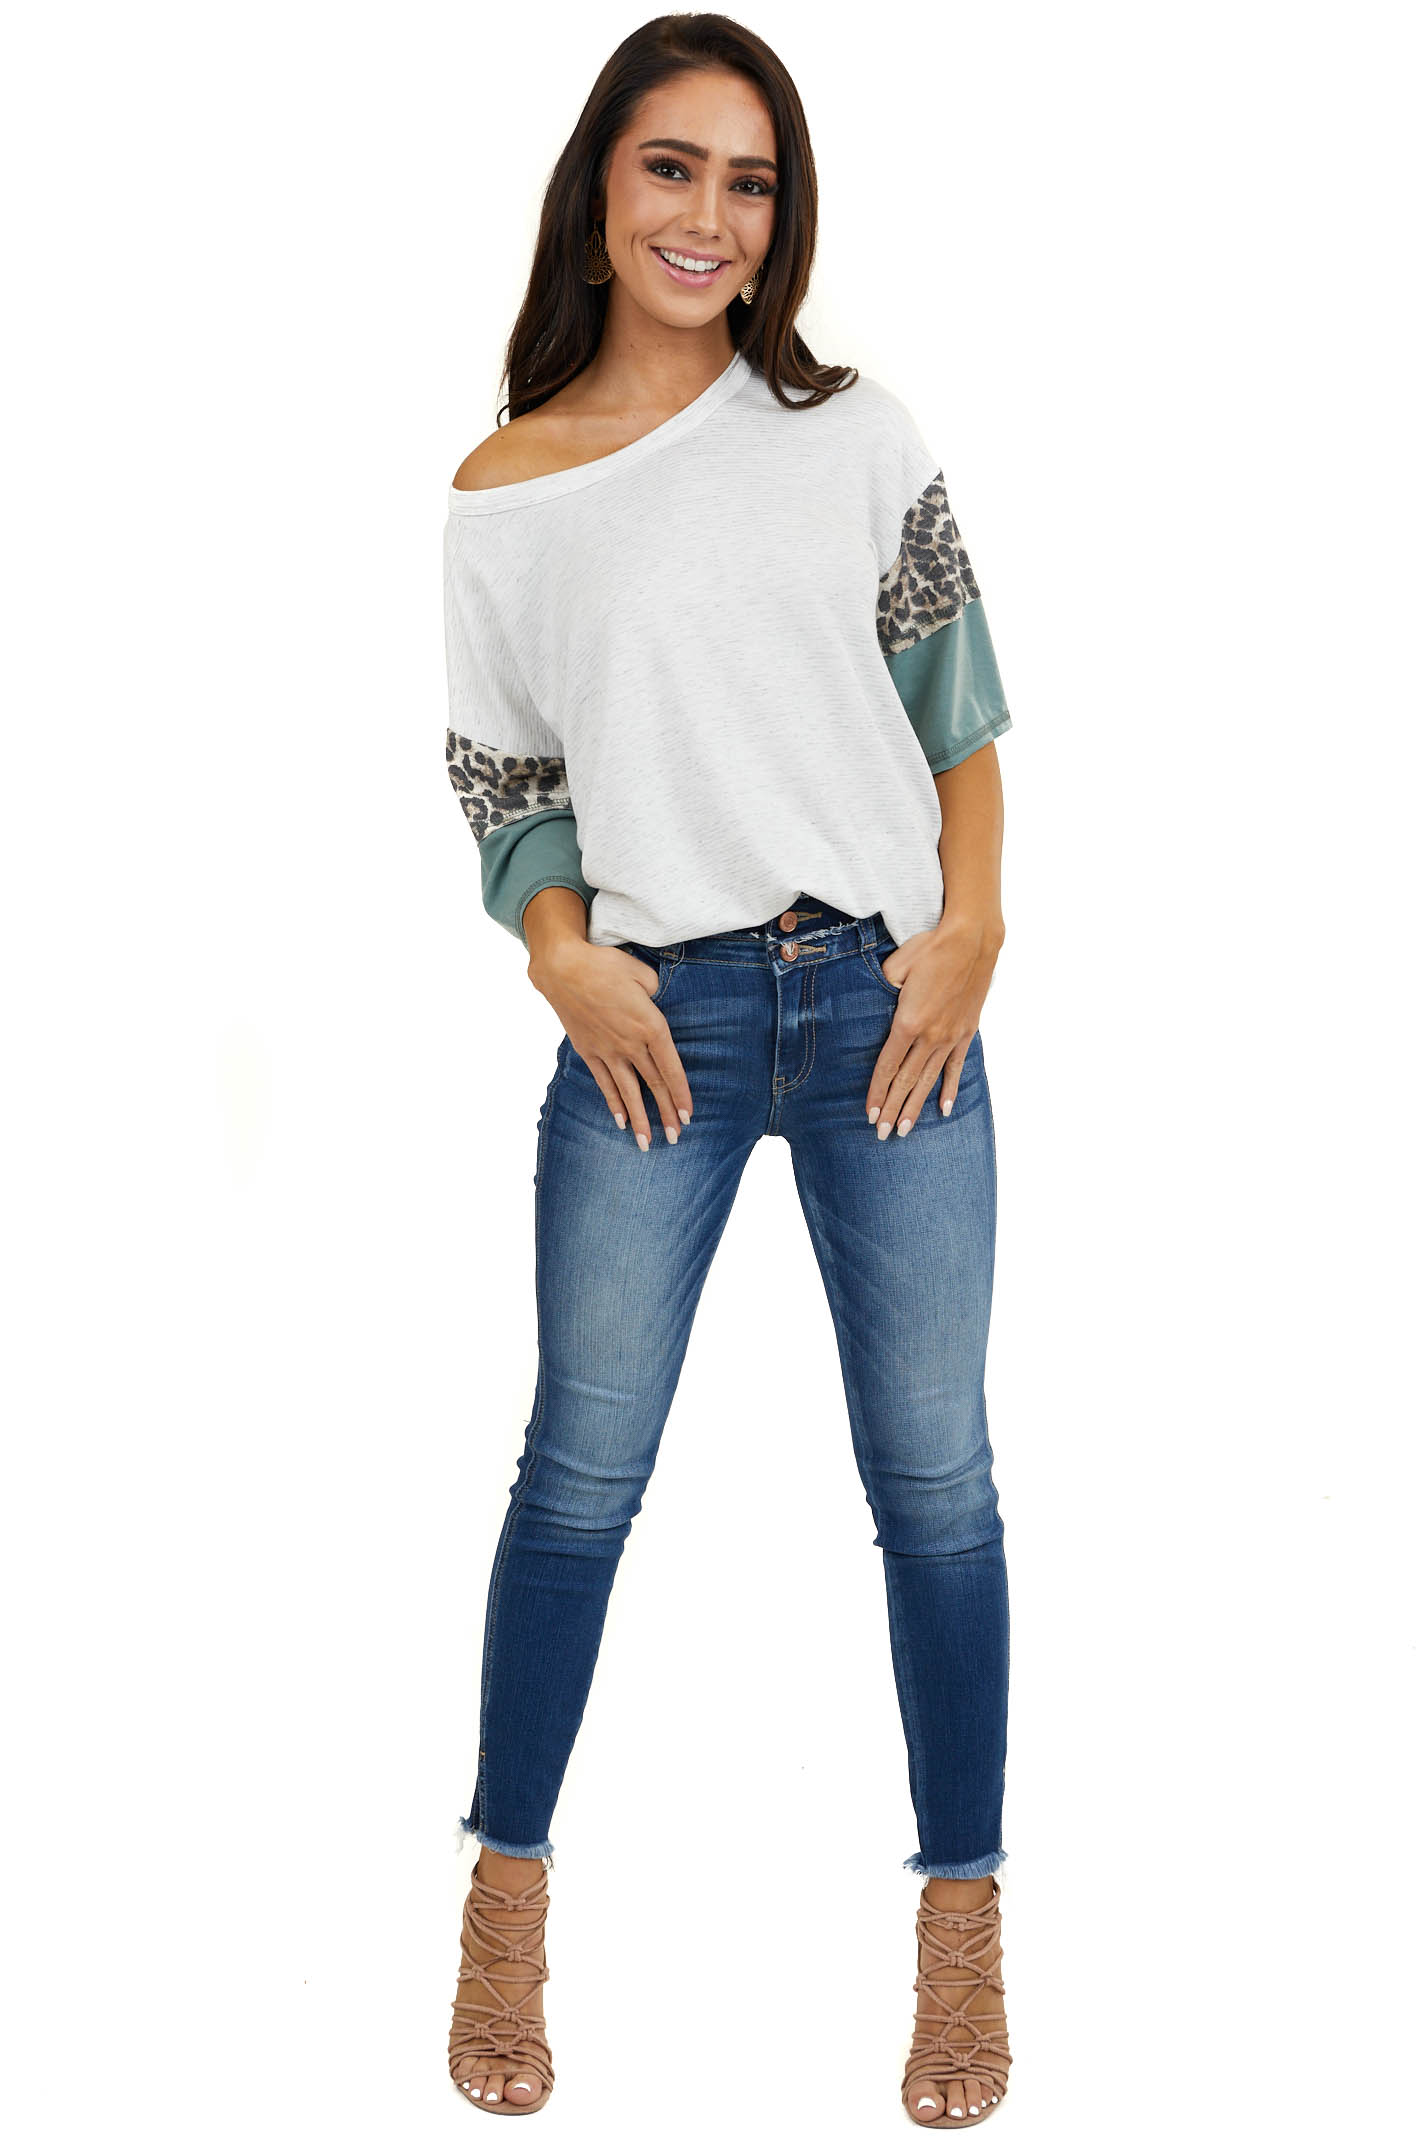 Heathered Ivory Half Sleeve Knit Top with Contrast Detail